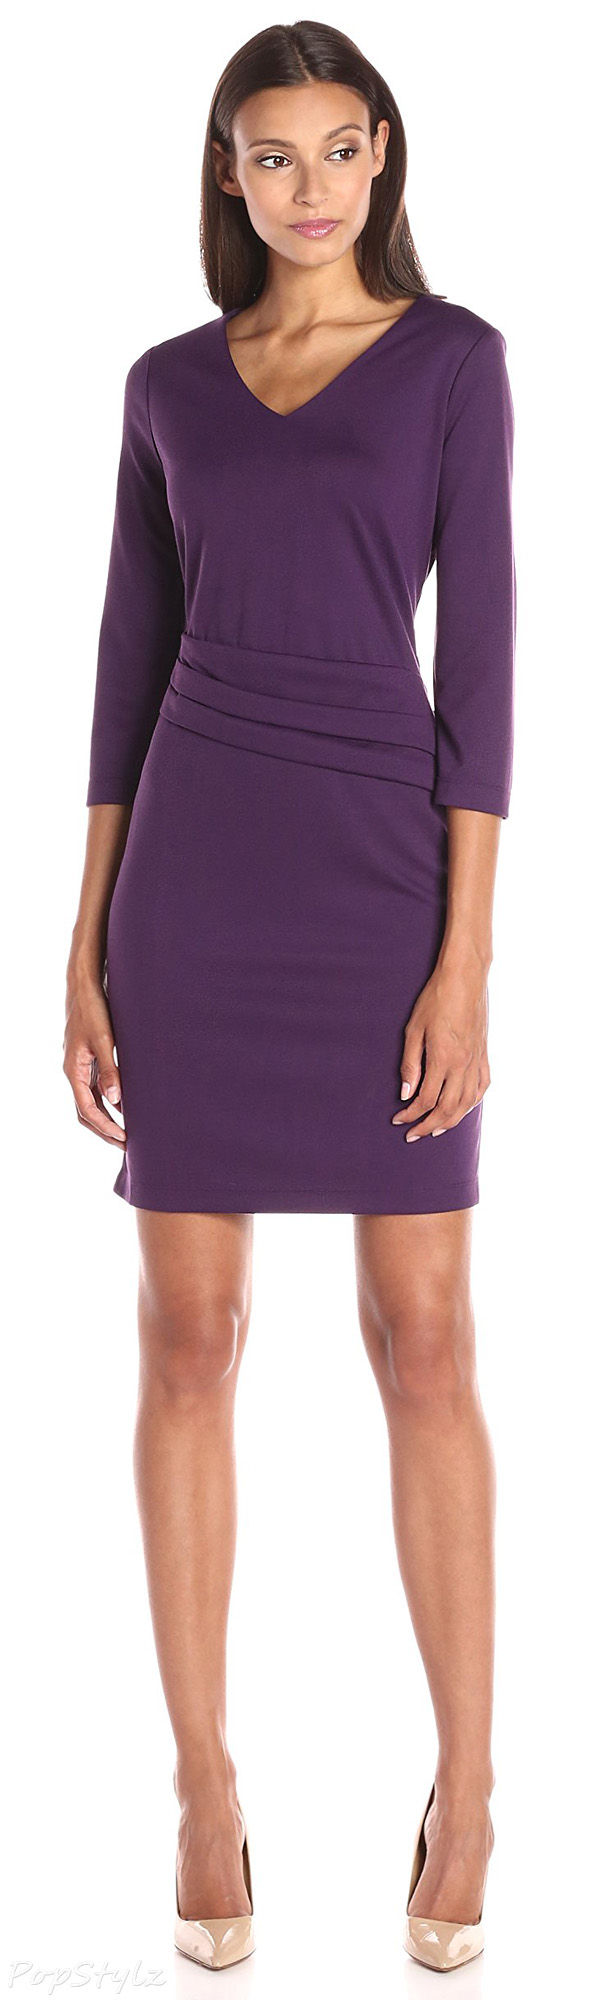 Lark & Ro 3/4 Sleeve Ponte Sheath Dress